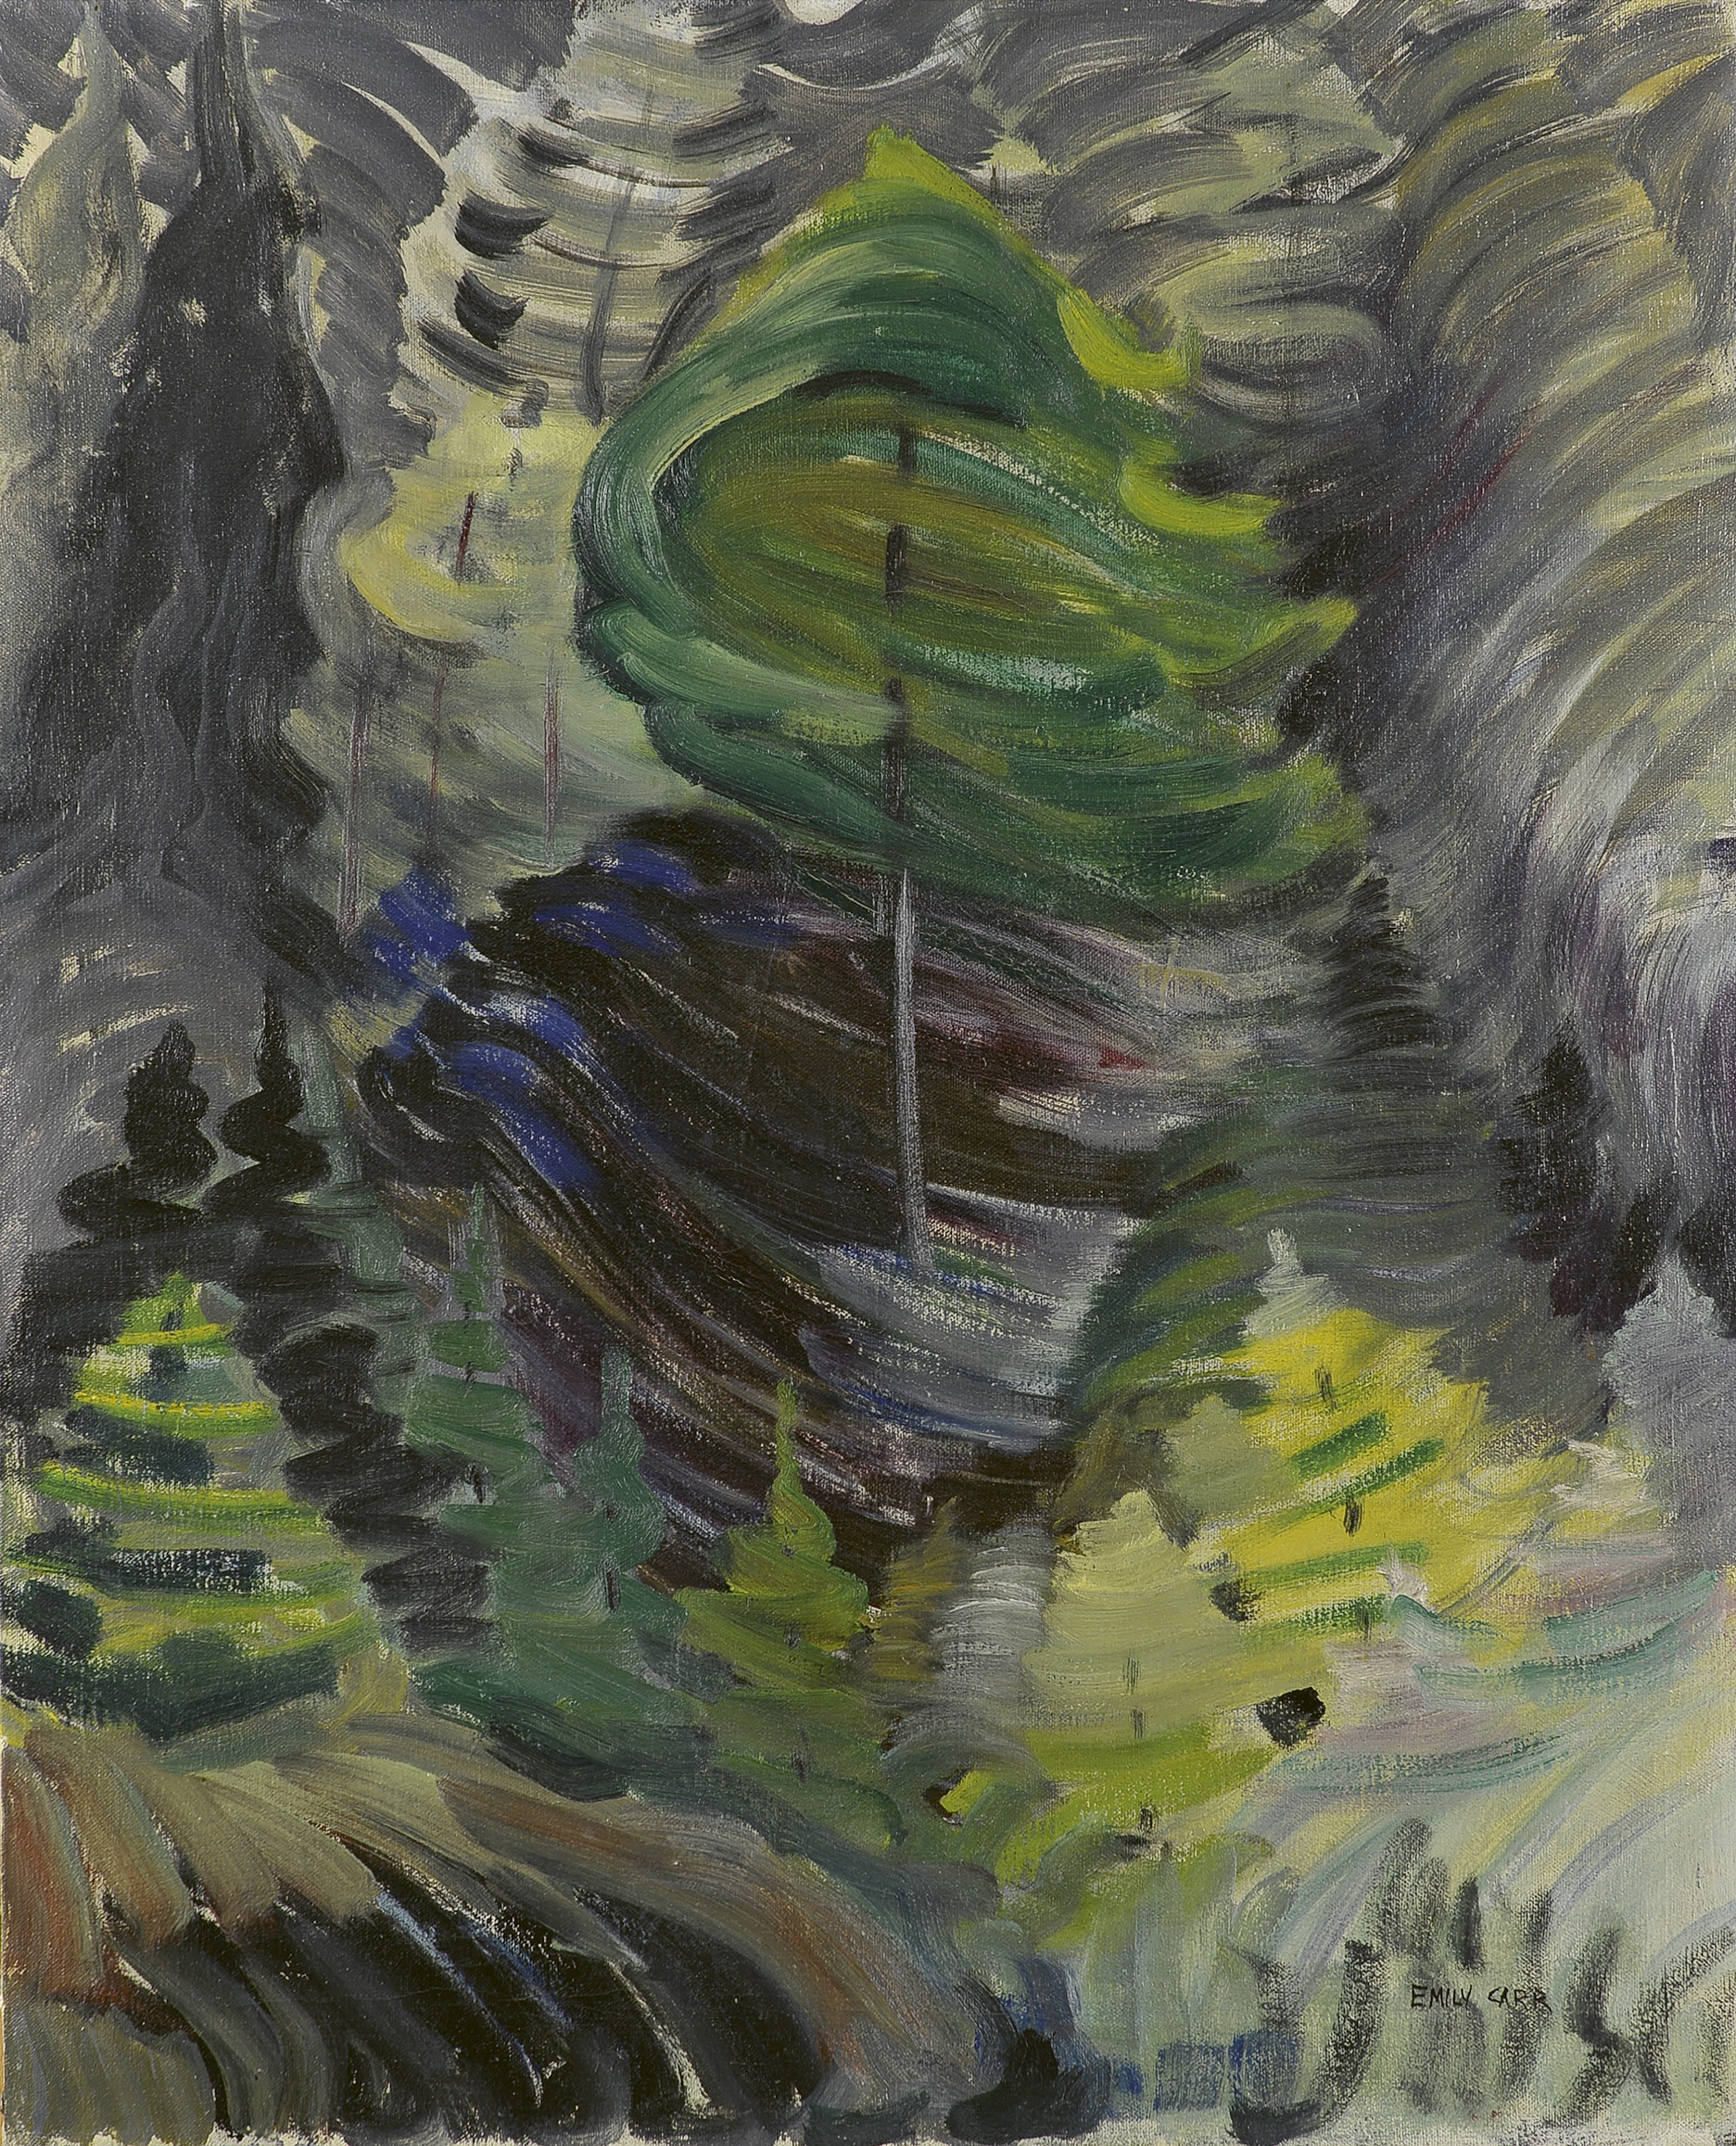 Emily Carr, Juice of Life, 1938–39, oil on canvas (Collection of the Art Gallery of Greater Victoria, Gift of Dr. Ethlyn Trapp, Vancouver. Photo: Stephen Topfer, Art Gallery of Greater Victoria)